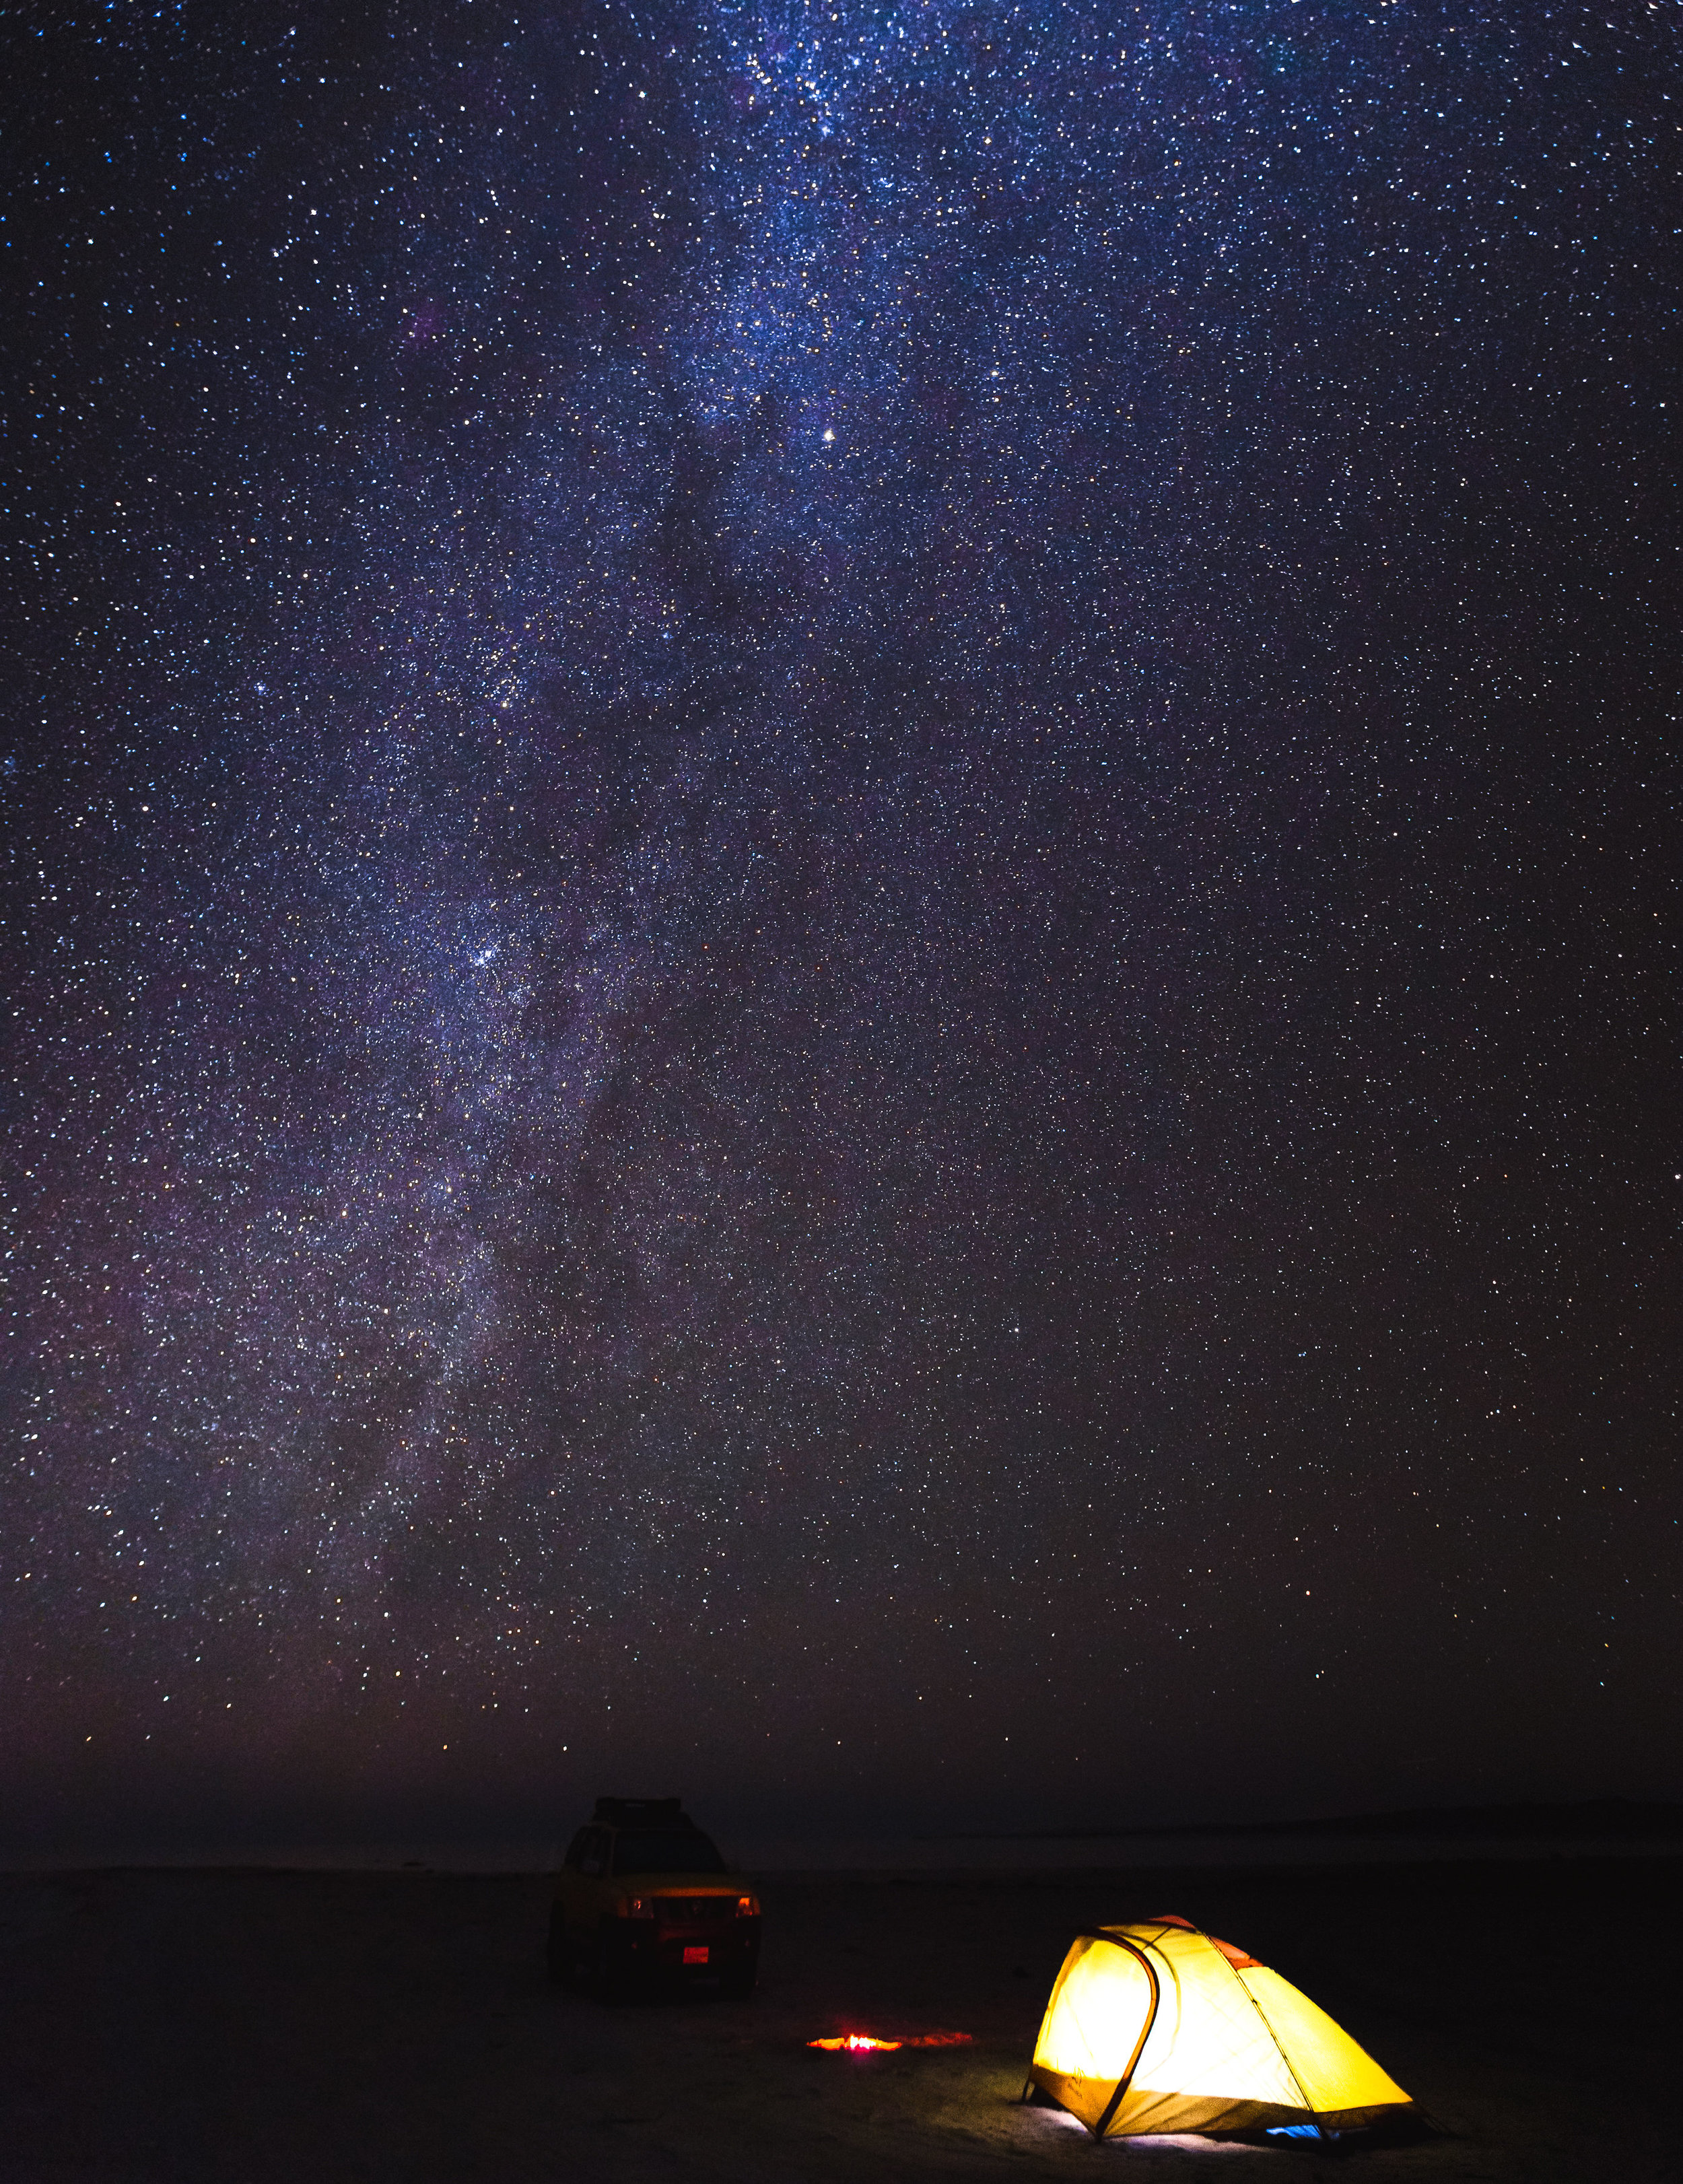 Travelers set up camp under the stars on the remote island of Masirah.